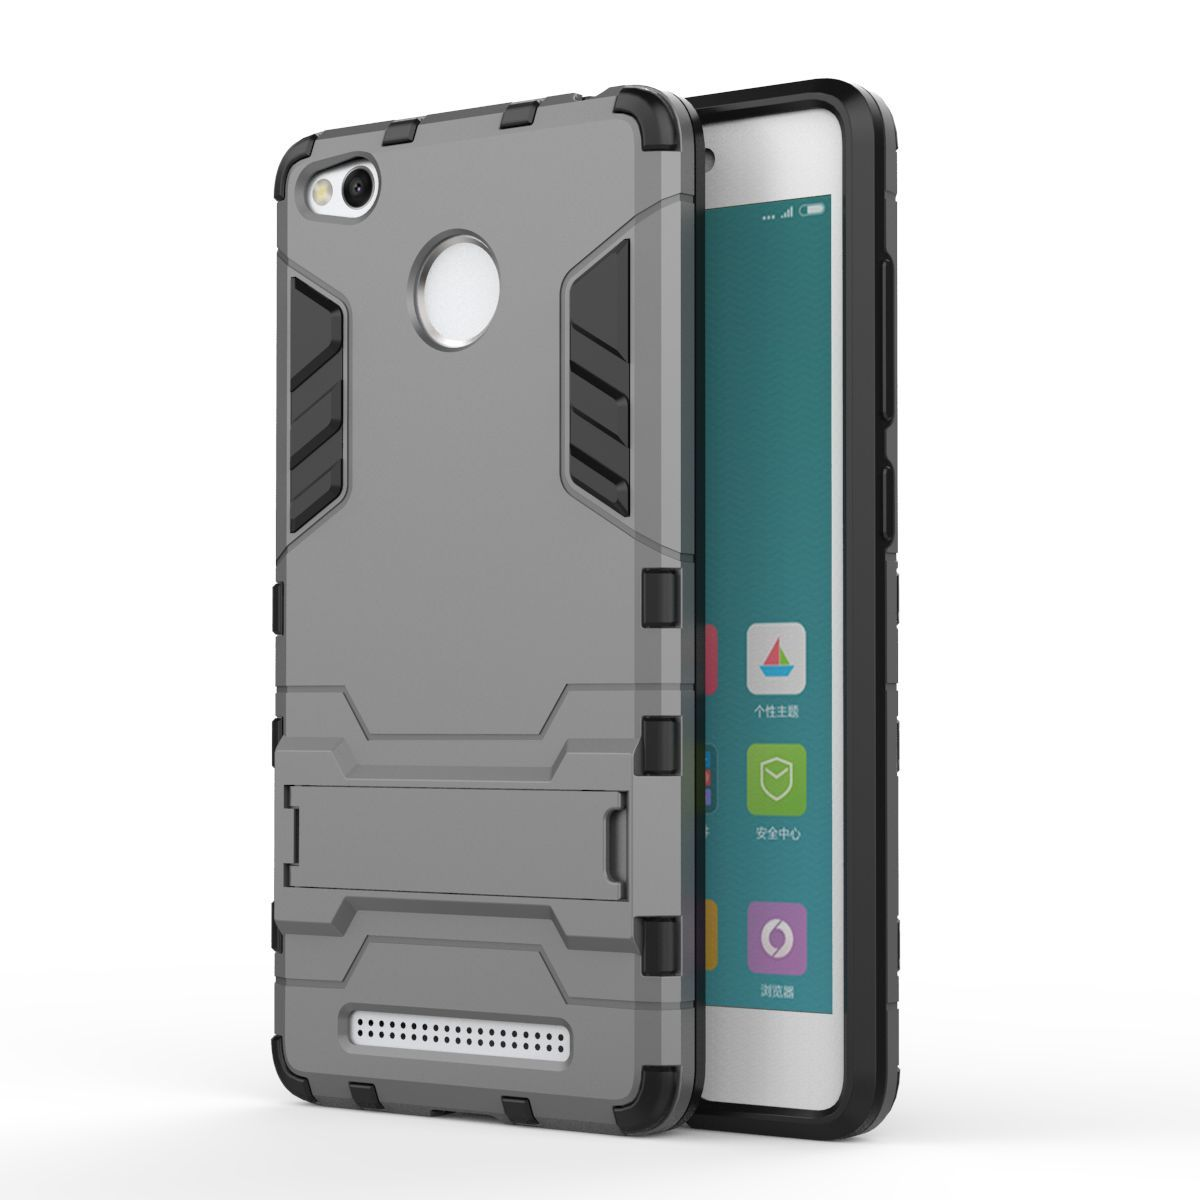 For Xiaomi Redmi 3 Pro Phone Case Shockproof Robot Armor Slim Rugged Rubber Silicone Hard Back Cover 3s